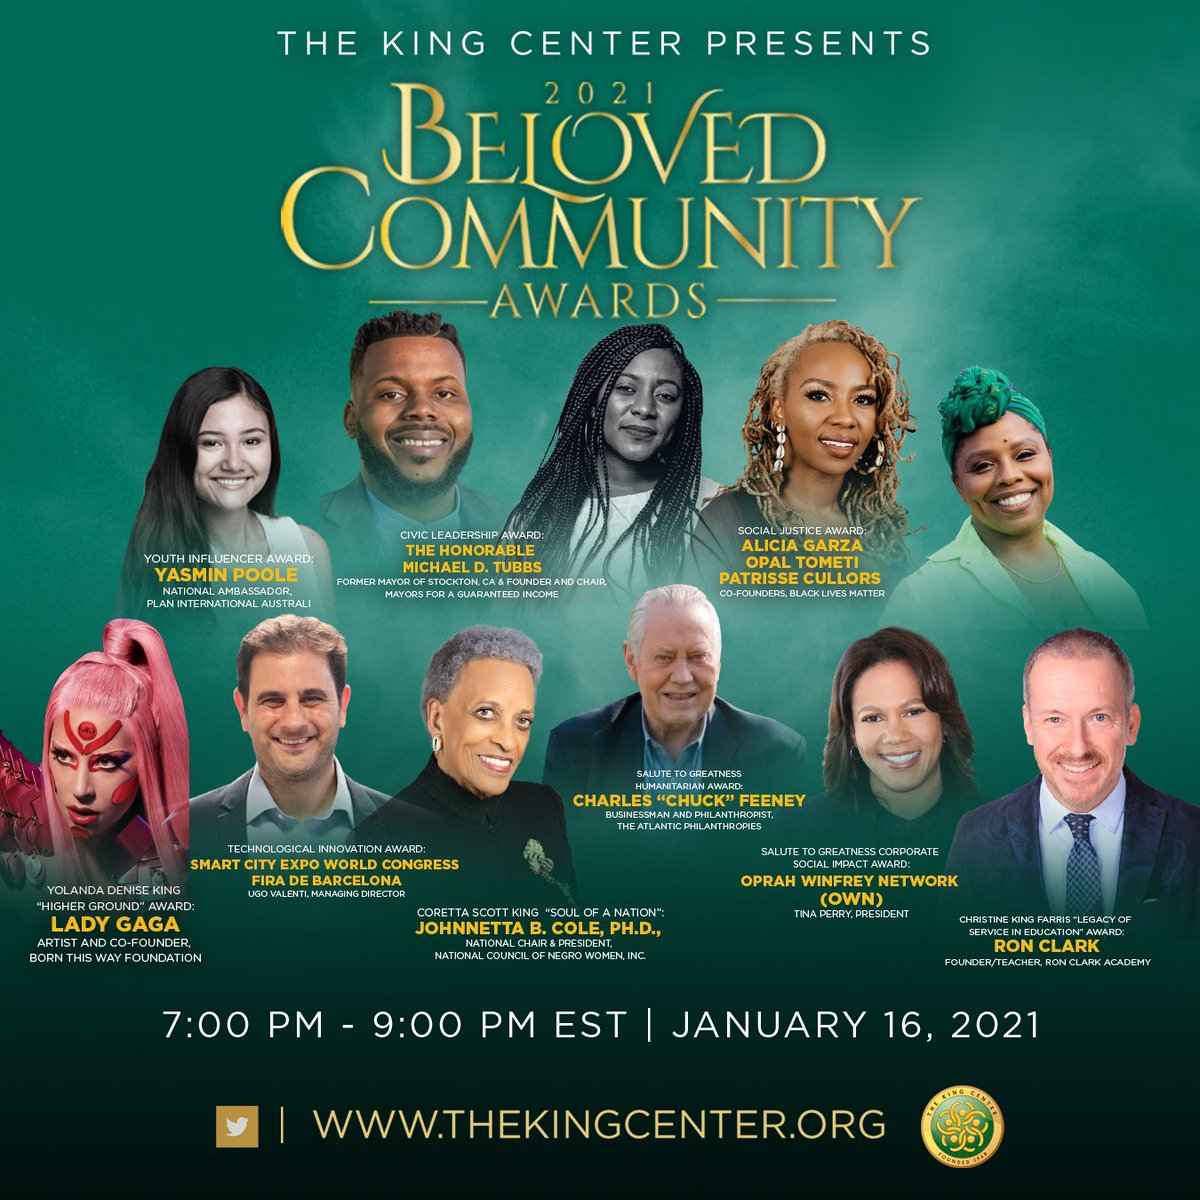 Streaming here TODAY, 7pm ET. Be a part of our 2021 #BelovedCommunity Awards, as we recognize inspiring activists, influencers, organizations and artists, including @LadyGaga, @owntv, @michaeldtubbs, and #DrJohnettaBCole. Presenters include @IAMJHUD and @LittleMissFlint. #MLK